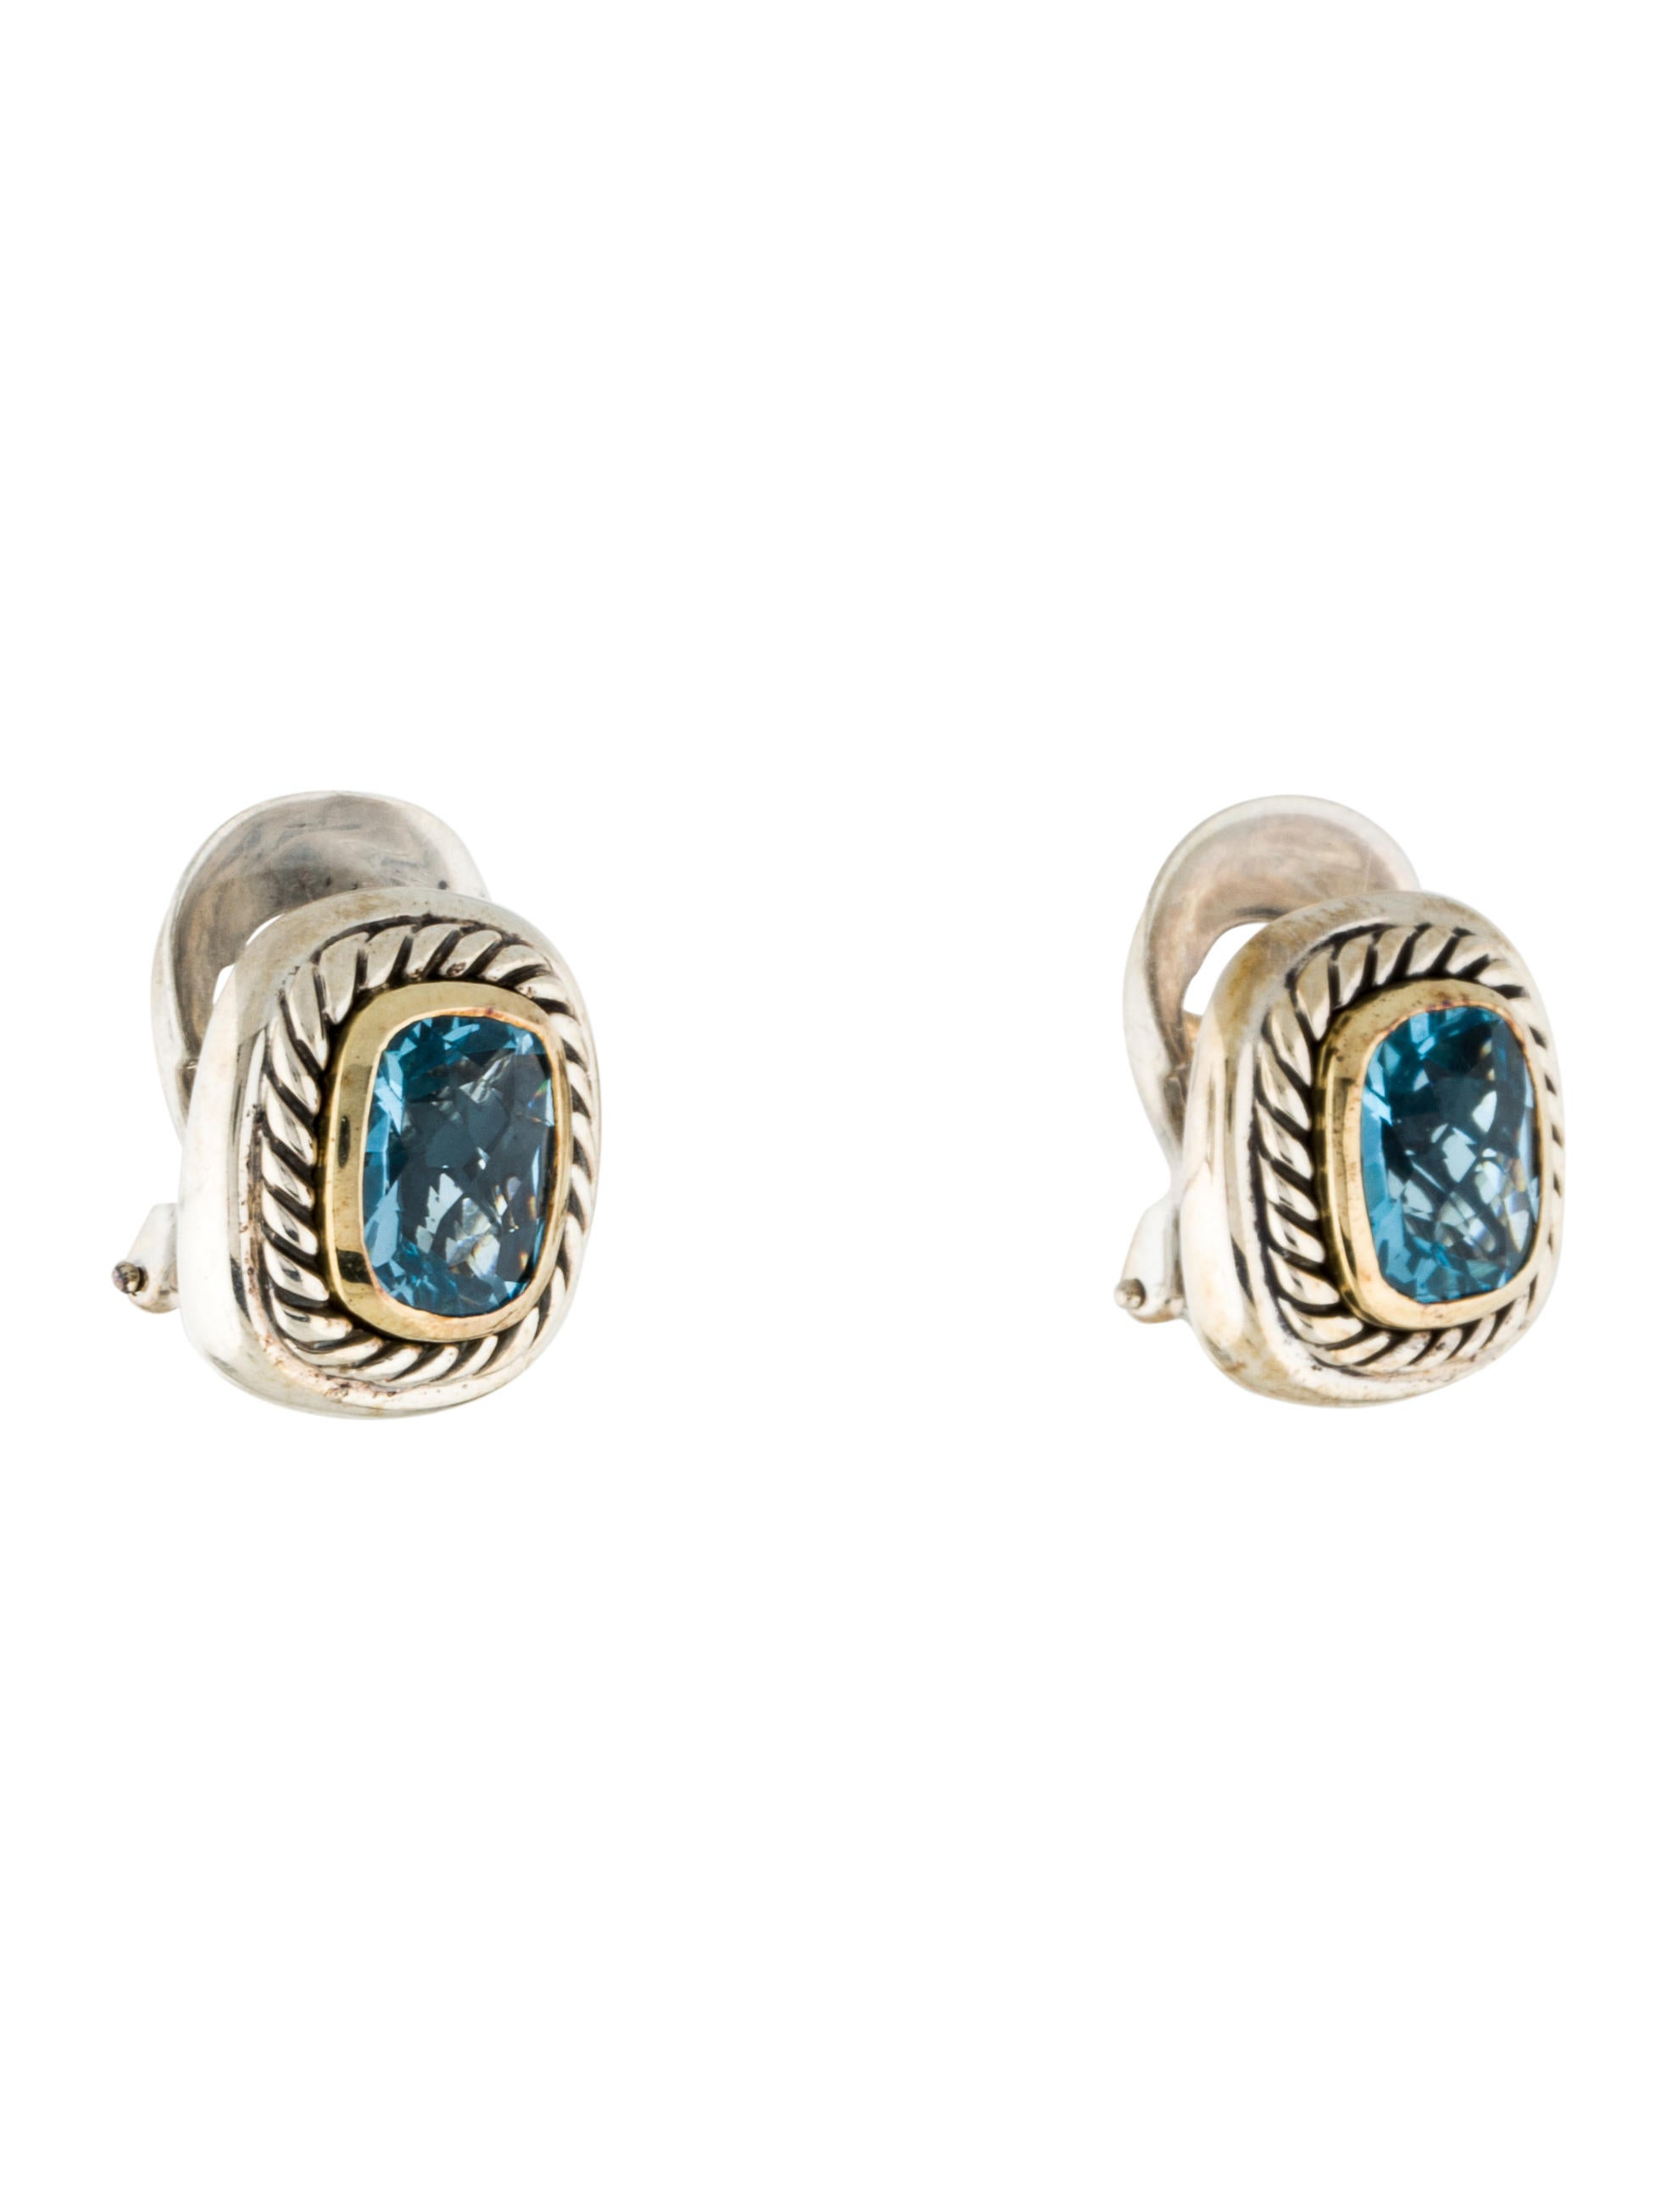 david yurman earrings sale david yurman blue topaz albion earrings earrings 1359